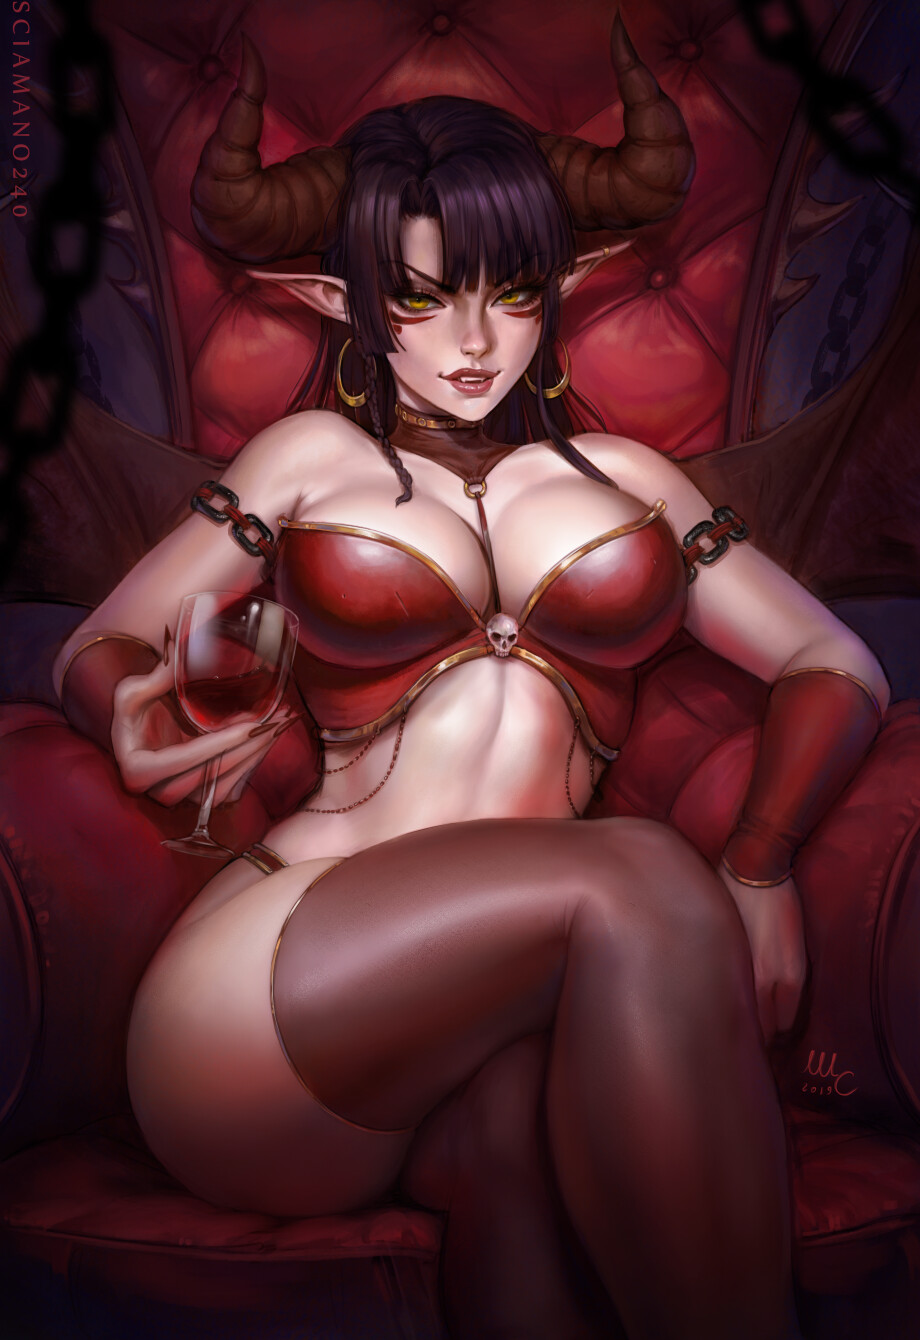 1girl alcohol armchair artist_name bangs black_hair black_legwear blunt_bangs blurry blurry_background blurry_foreground breasts bustier chain chair crossed_legs cup cupping_glass demon_girl demon_wings drinking_glass earrings eyebrows_visible_through_hair facepaint facial_mark fangs feet_out_of_frame fingernails halloween highres holding holding_cup hoop_earrings horns jewelry large_breasts lips lipstick long_fingernails long_hair looking_at_viewer makeup mascara original parted_lips pointy_ears red_lips red_nails red_theme sciamano240 sharp_fingernails signature sitting skull sneer solo spread_wings strapless succubus teeth thigh-highs thighs tsurime wine wine_glass wings wrist_cuffs yellow_eyes